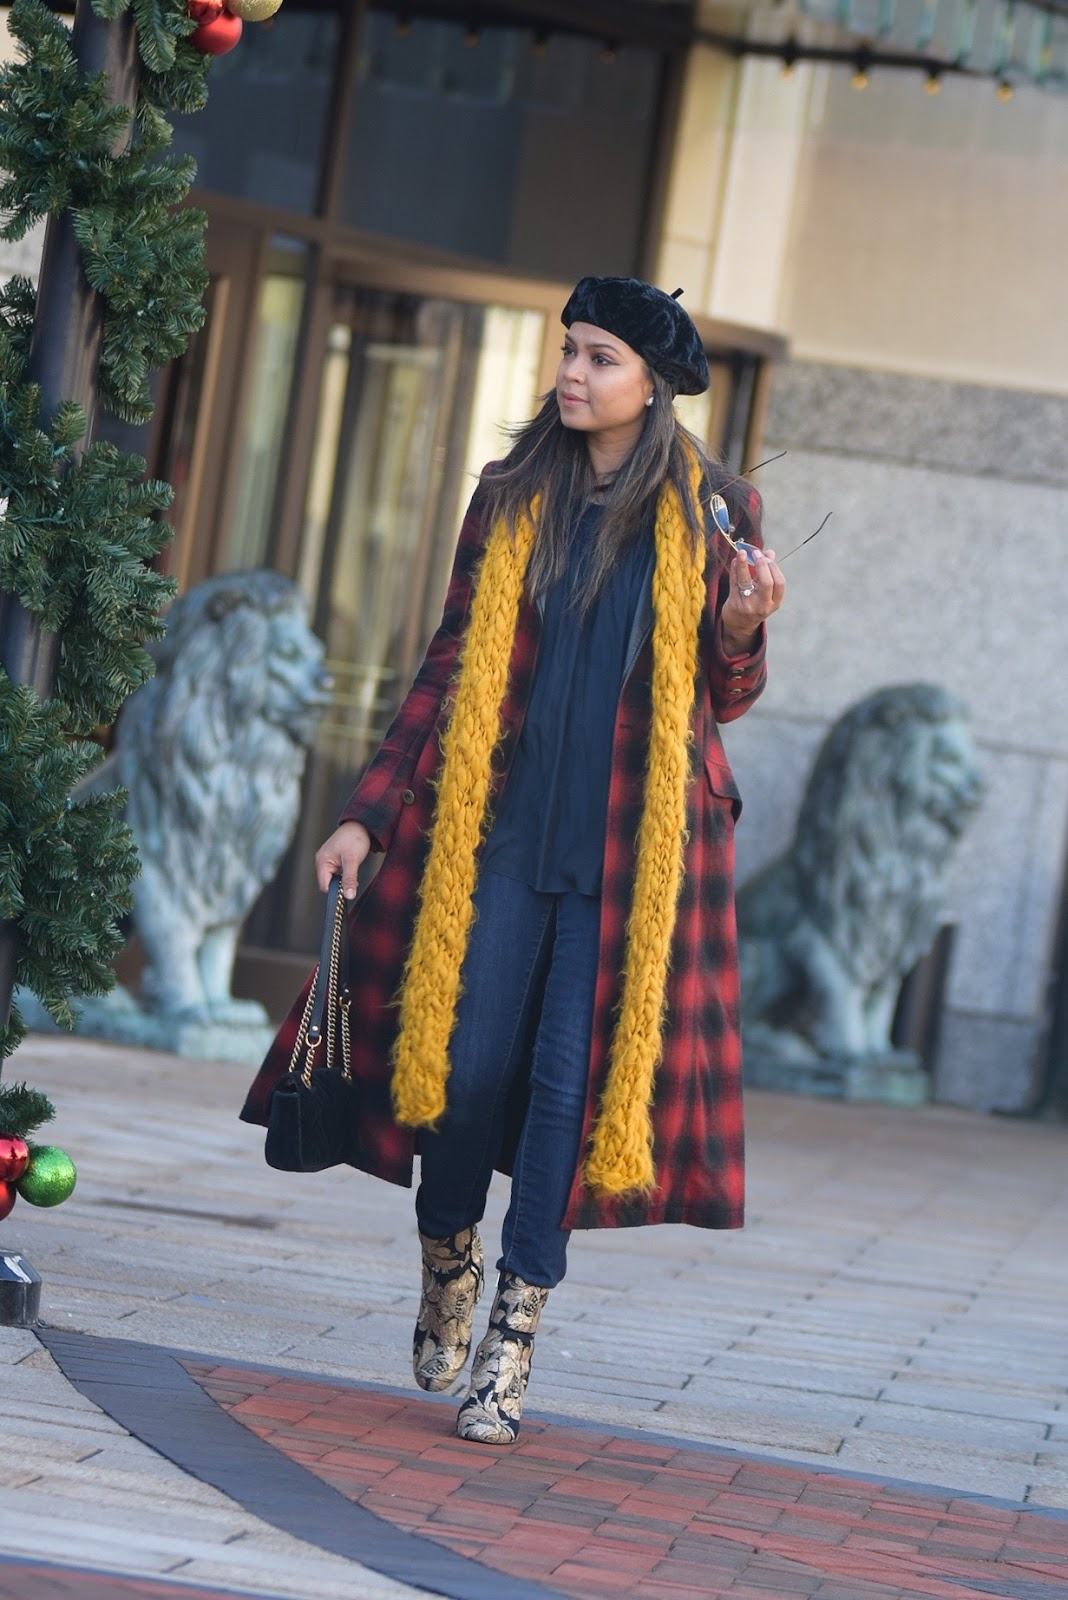 top trends from 2017 that will stay strong in 2018, berets, beret hat, velvet booties, mustard yellow scarf, plaid jacket, sequin booties, gucci marmont bag